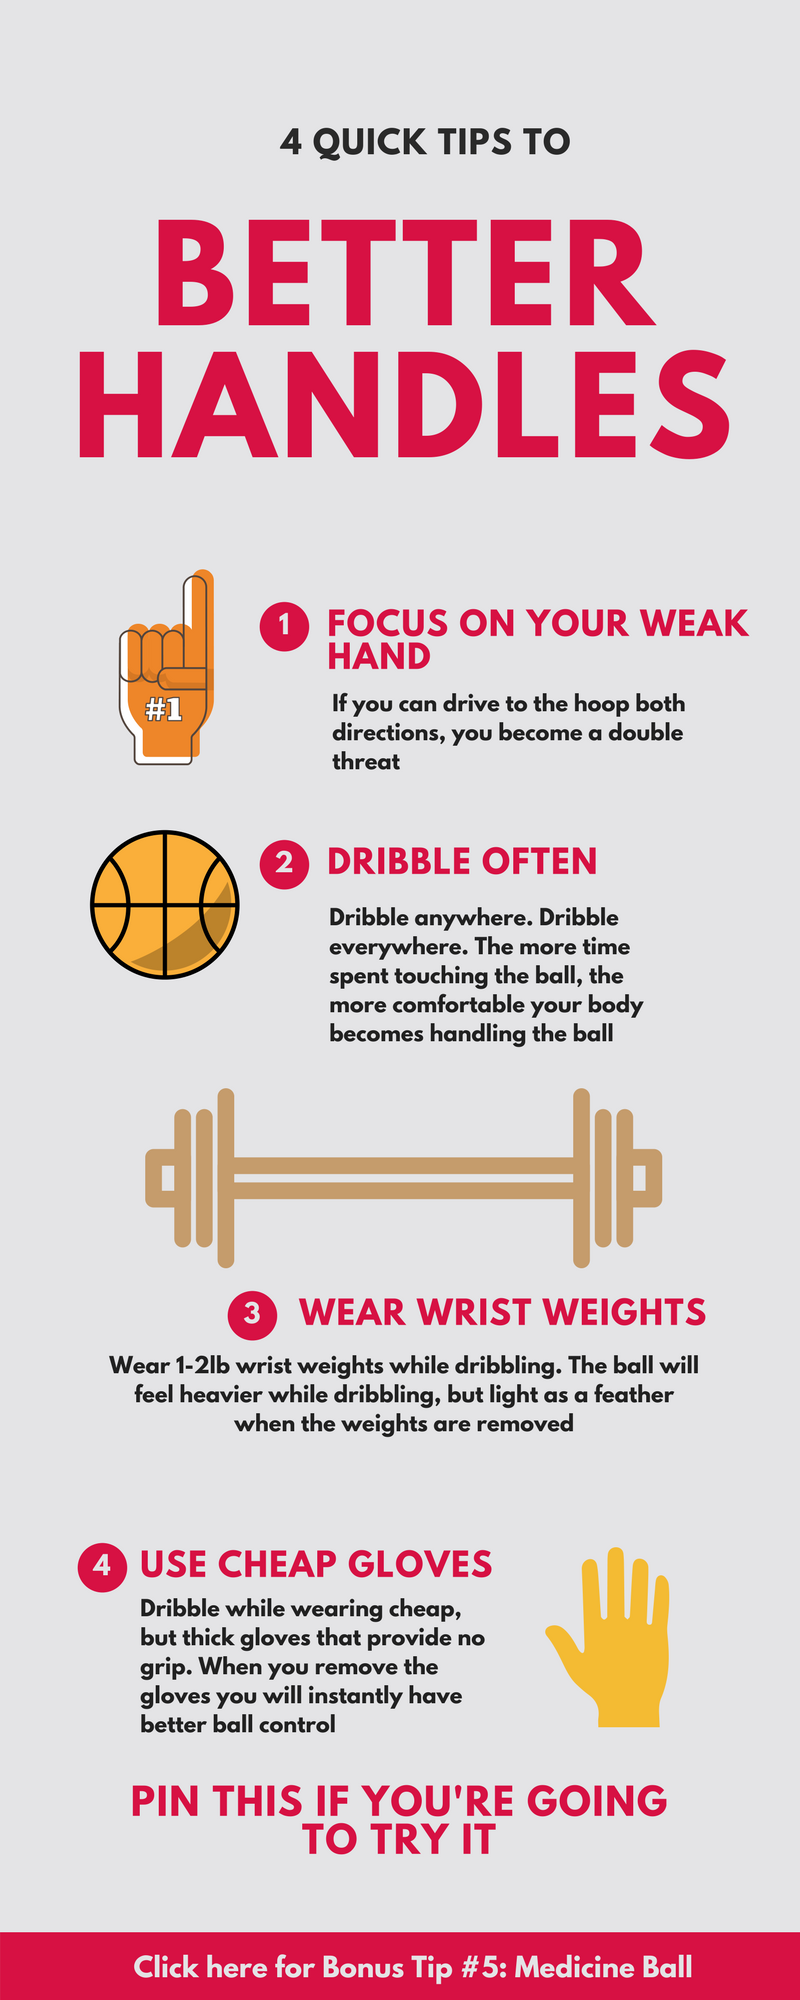 Quick tips to better handles. Don't forget to click on Bonus Tip # 5! Basketball tips, basketball drills, nba tips, basketball motivation, basketball tricks, basketball dribbling drills, ball handling drills, basketball shooting drills, basketball exercises, drills for basketball, basketball passing drills, basketball defense drills, basketball warm up drills, girls basketball, boys basketball, youth basketball, adult basketball, high school basketball